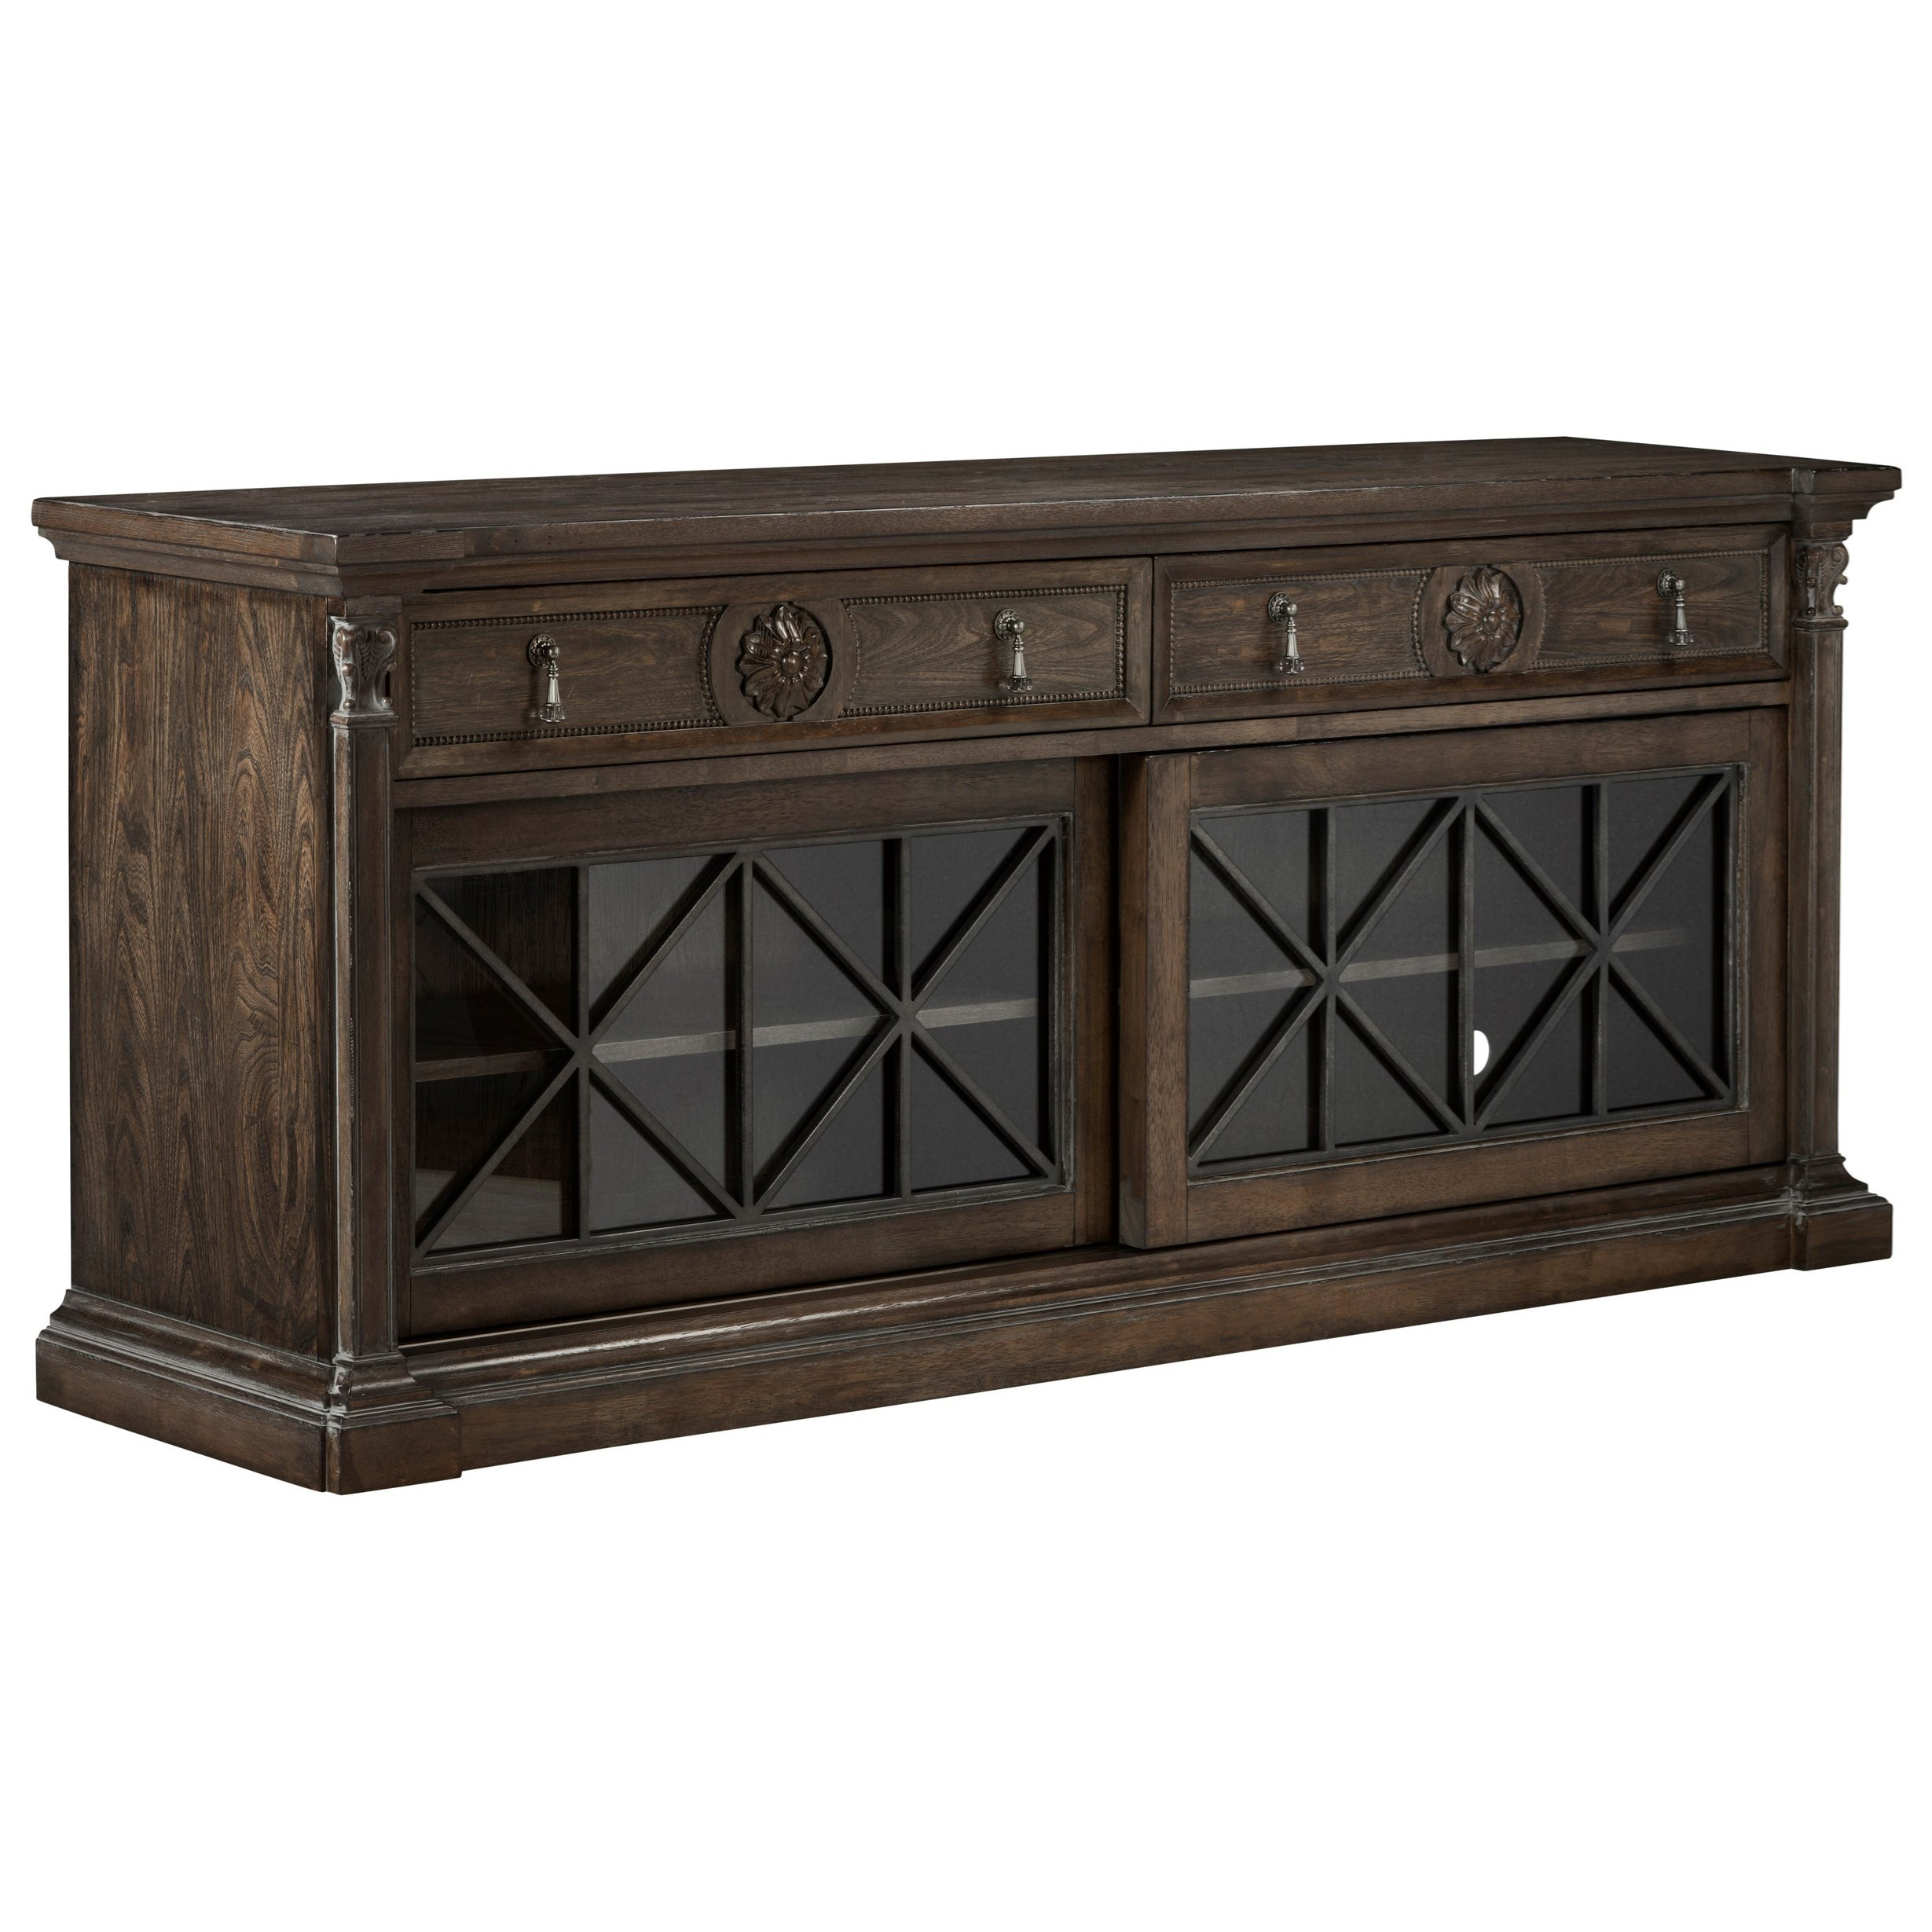 Vintage Salvage  Townley Entertainment Console by Klien Furniture at Sprintz Furniture